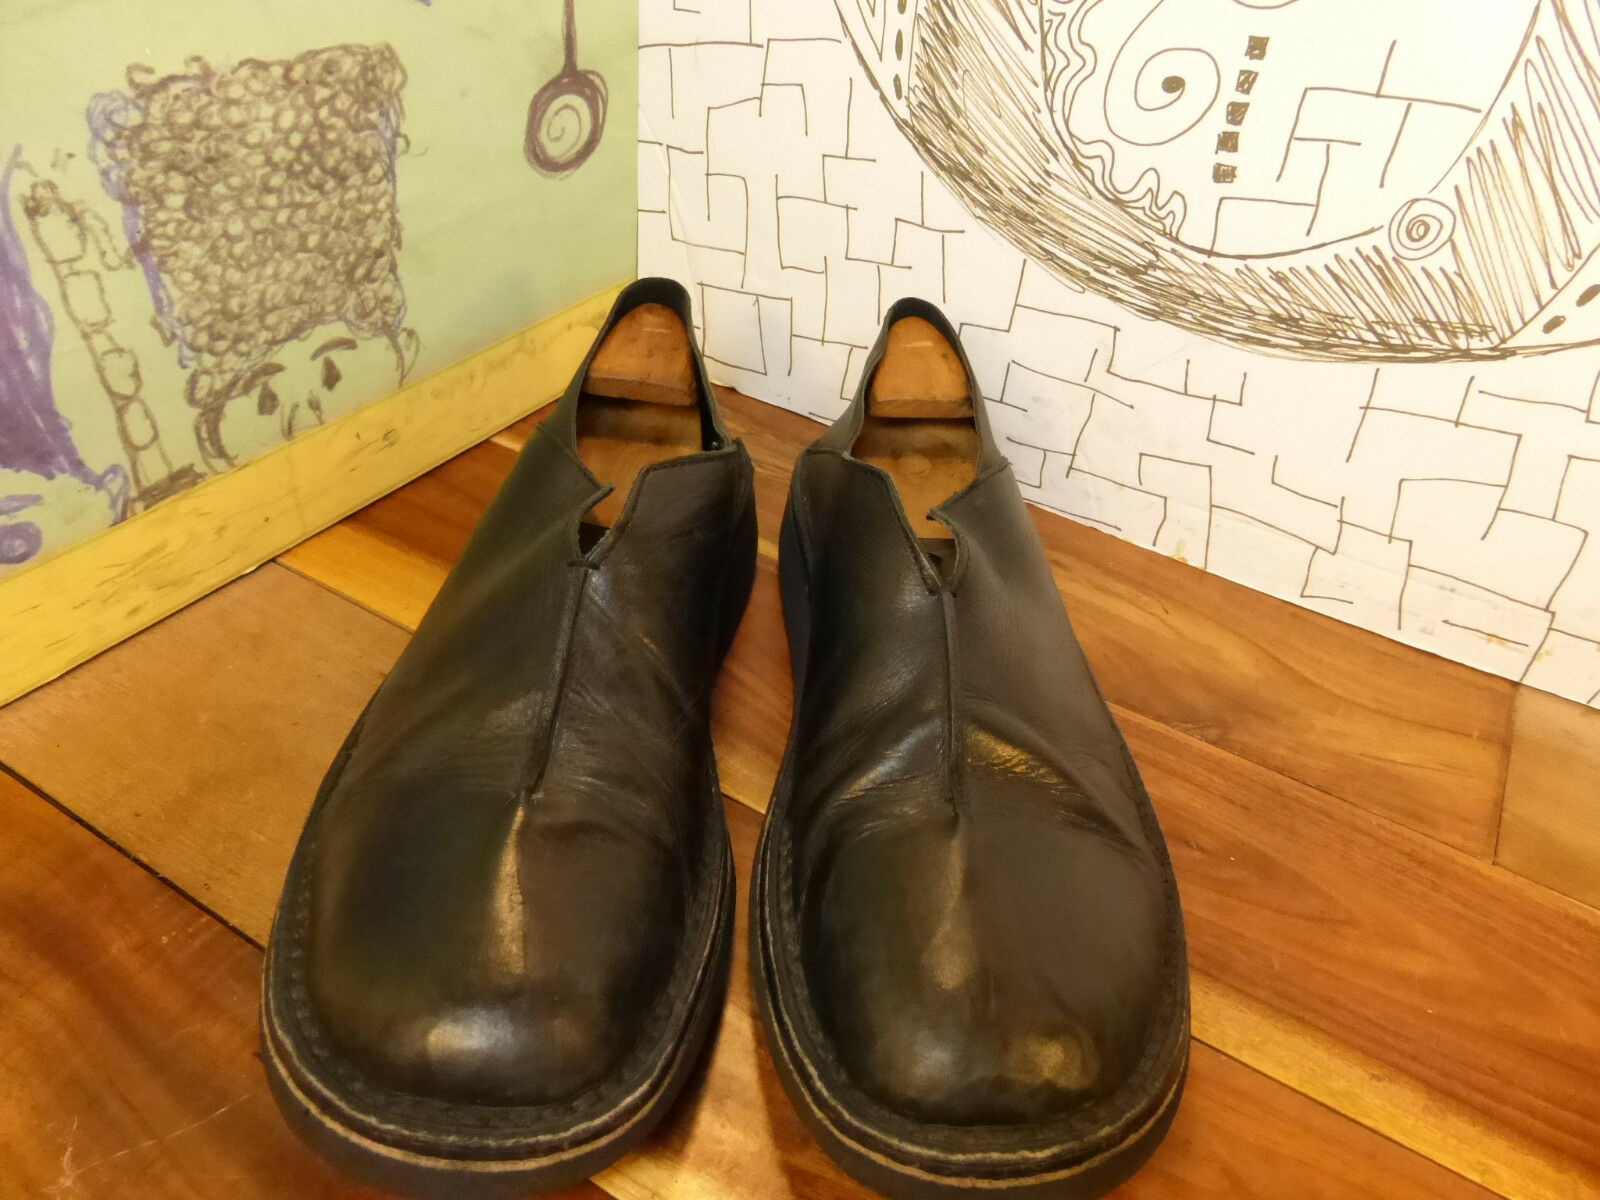 Pliner Black Leather in Loafers Men's 12M Made in Leather Italy Soft Leather fd4ec1